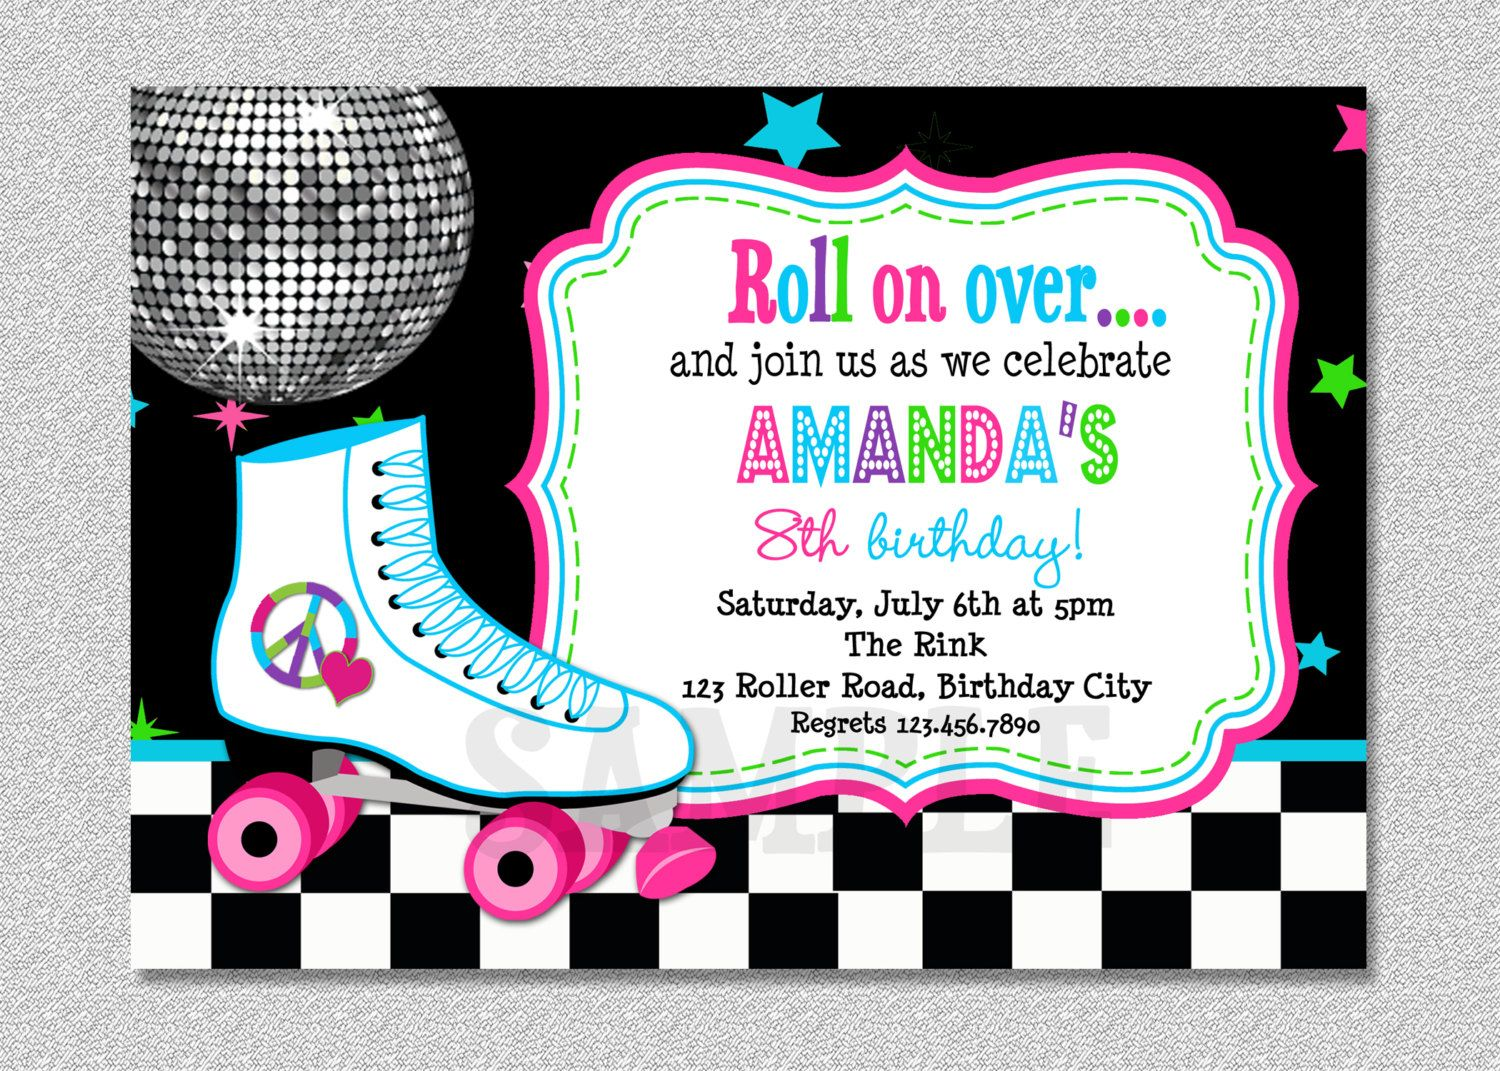 photo regarding Free Printable Roller Skate Party Invitations titled Obtain Totally free Template No cost Printable Roller Skating